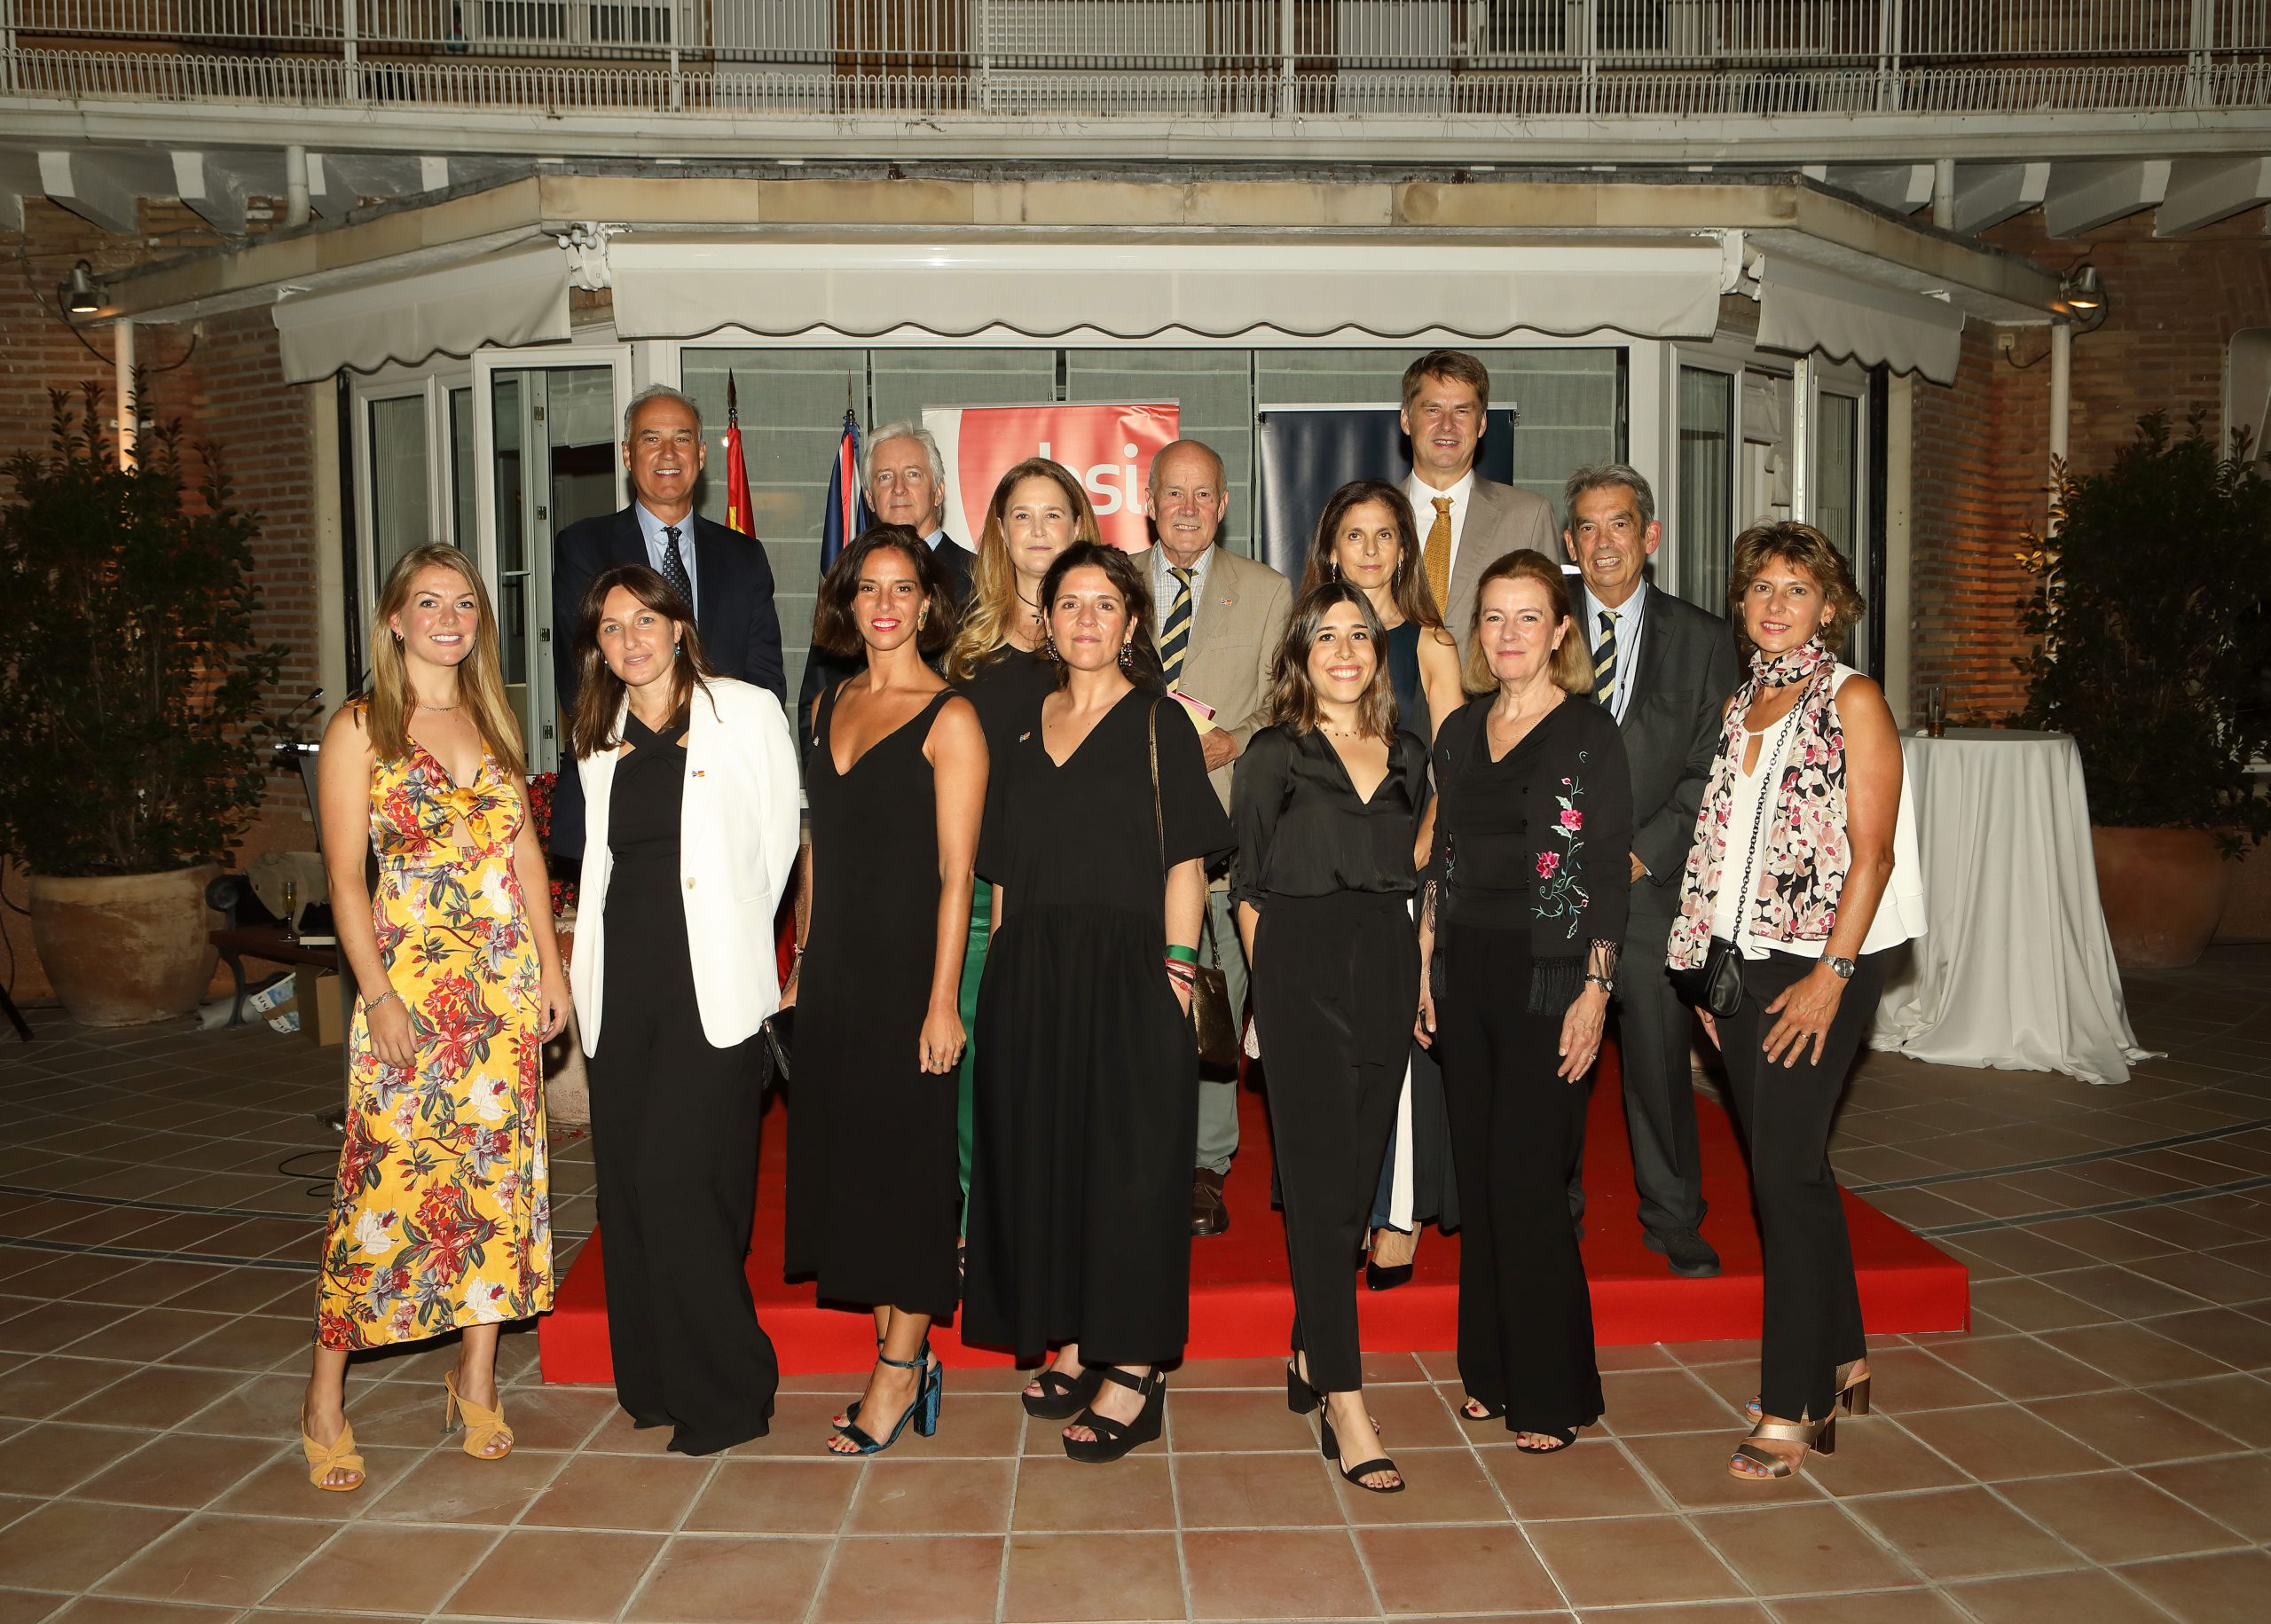 Autumn Reception at the British Embassy in Madrid